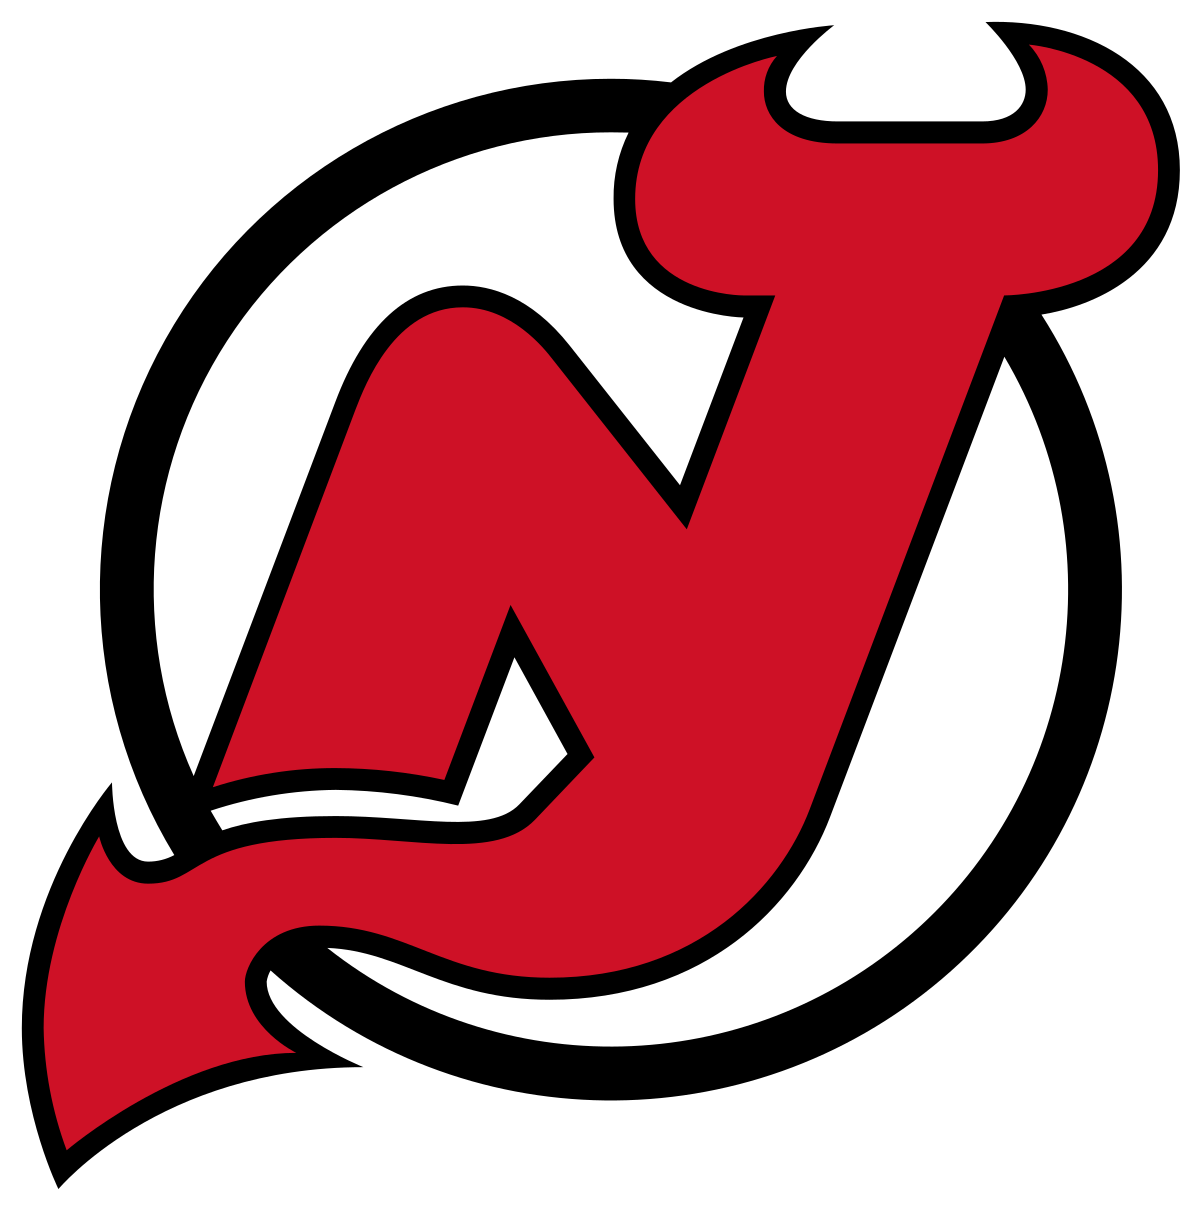 new jersey devils logo png